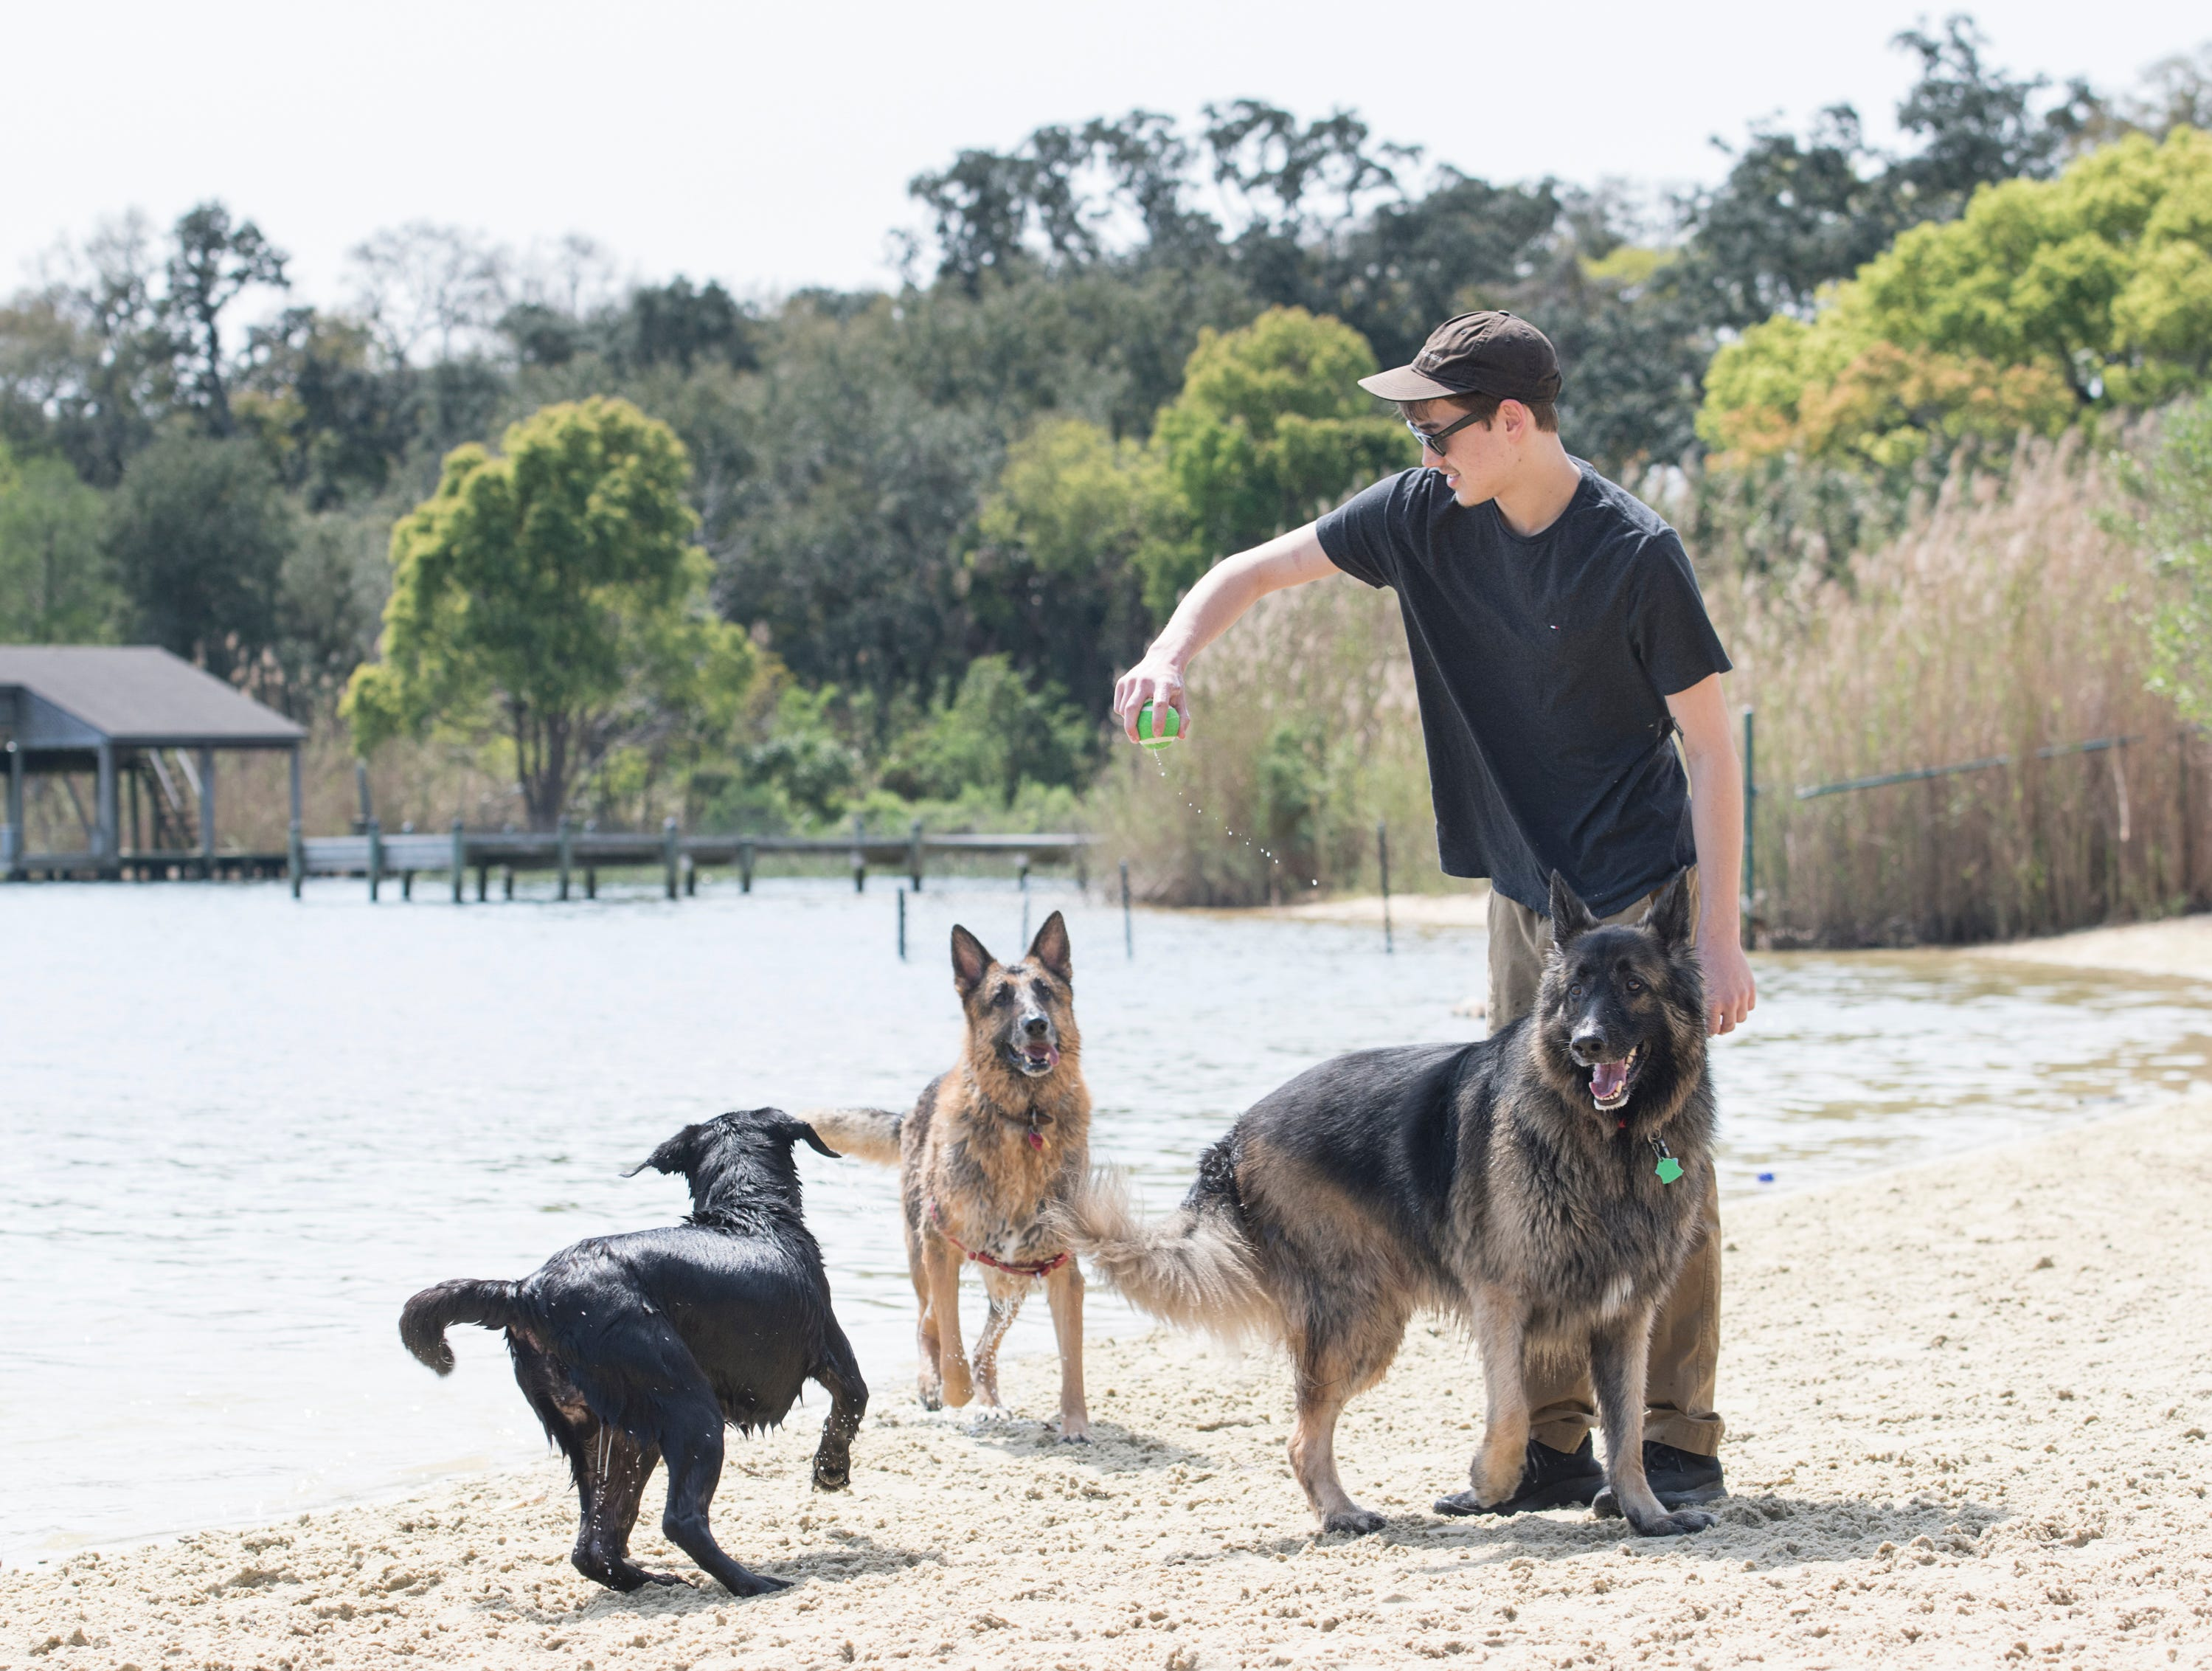 Cameron Griffis gets ready to toss a ball for his dog Spirit, left,  and other playful pooches at Bayview Park's dog park in Pensacola on Tuesday, March 12, 2019.  Navarre residents hope to get a similar dog park for their city.